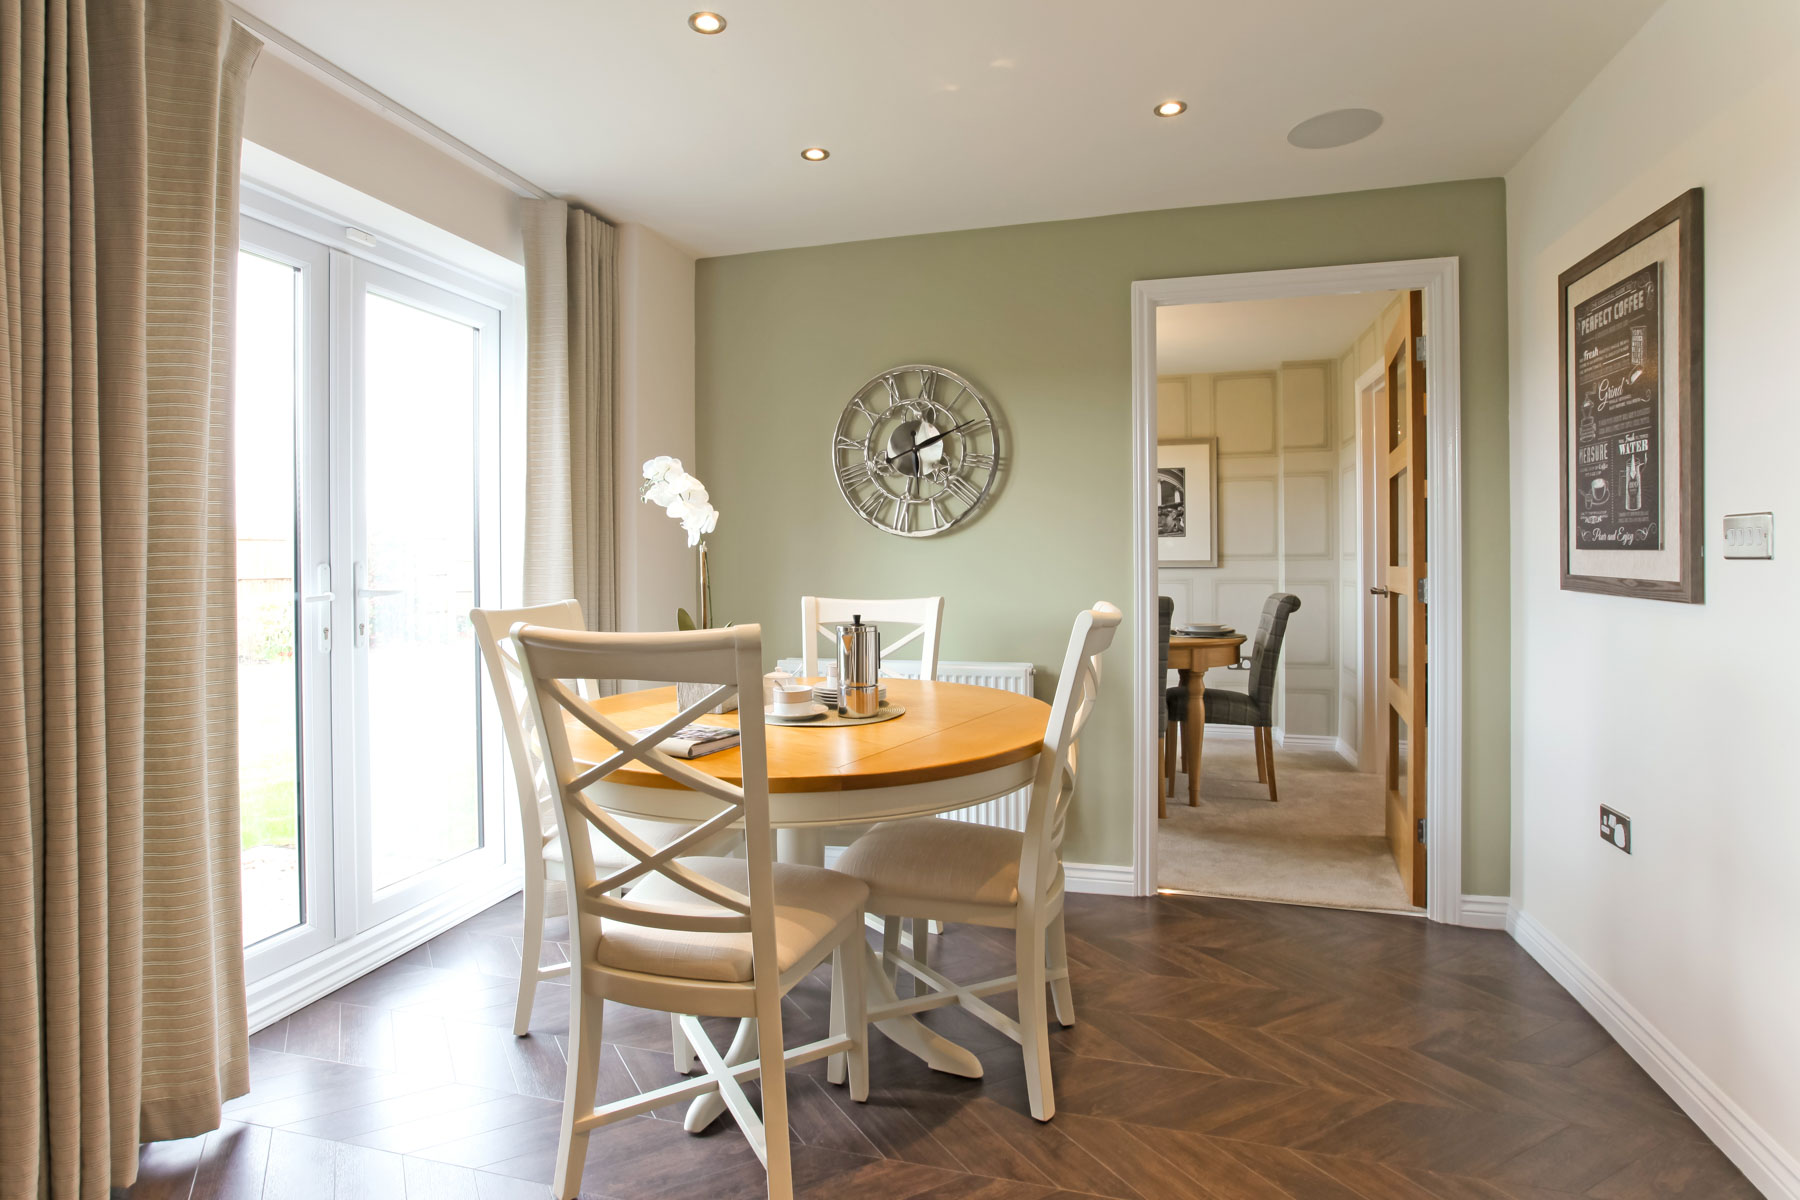 Eynsham_Dining_Area